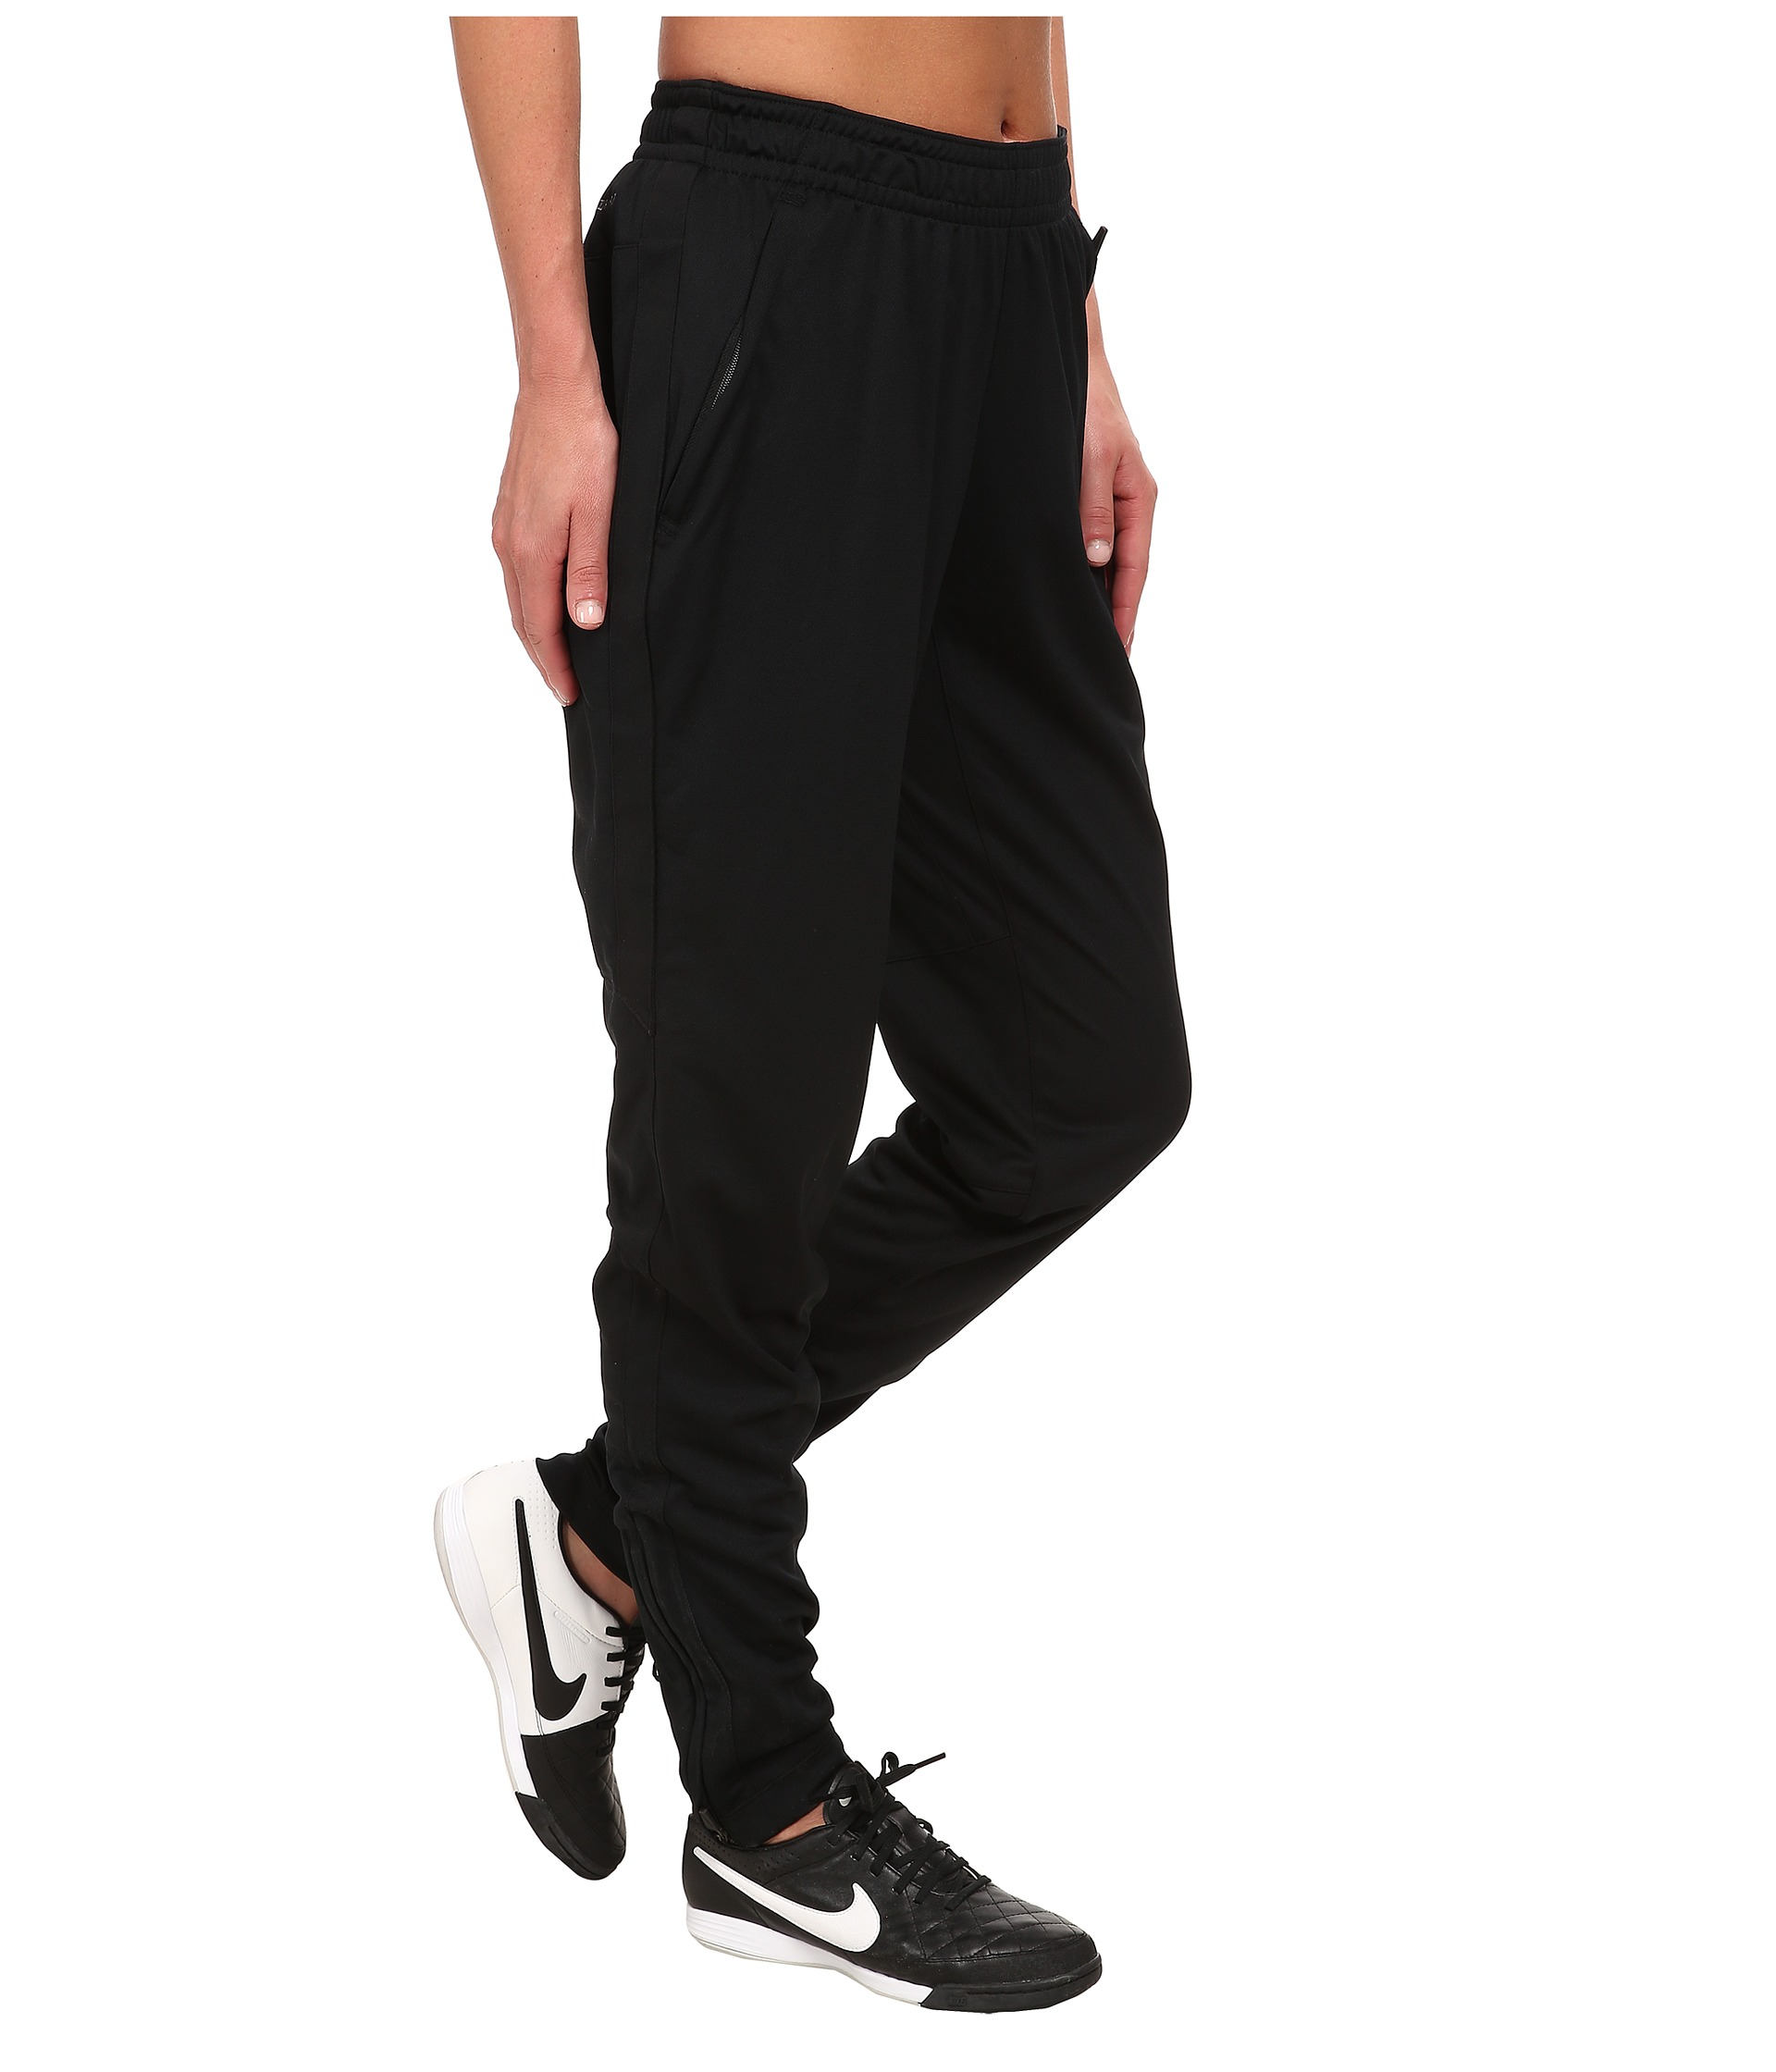 Cool NIKE Women39s Knit Soccer Pants From Sports Authority  Things I